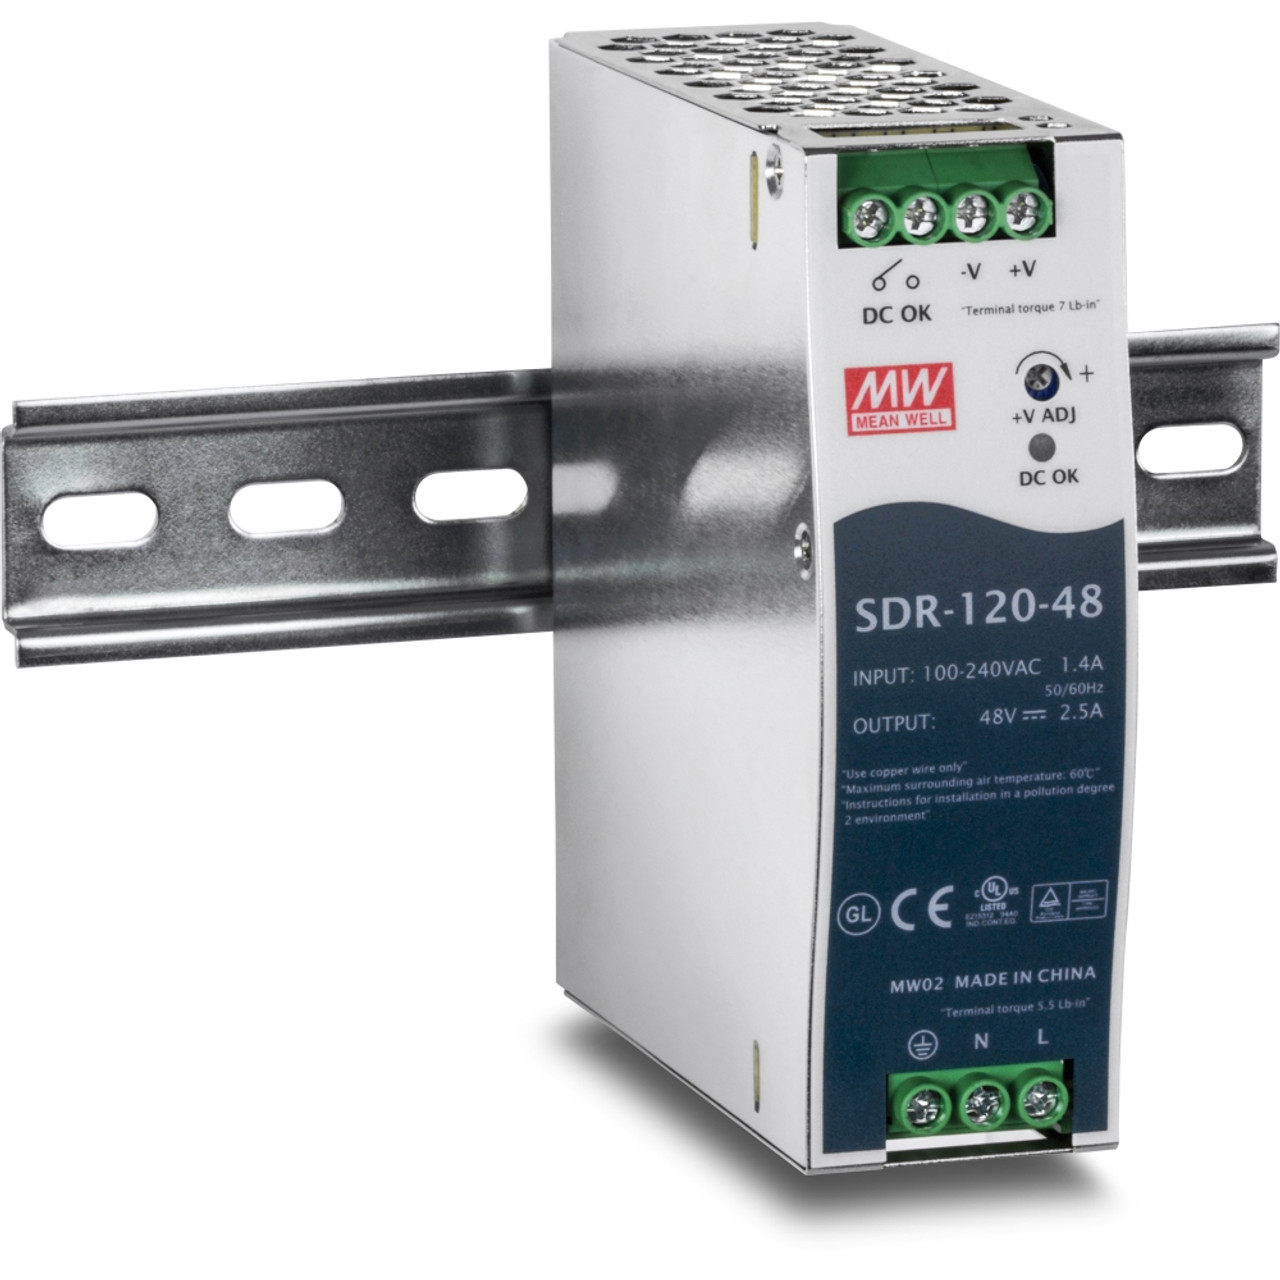 24 Volts 5 Amps 120 Watts Single Output Industrial DIN Rail Power Supply